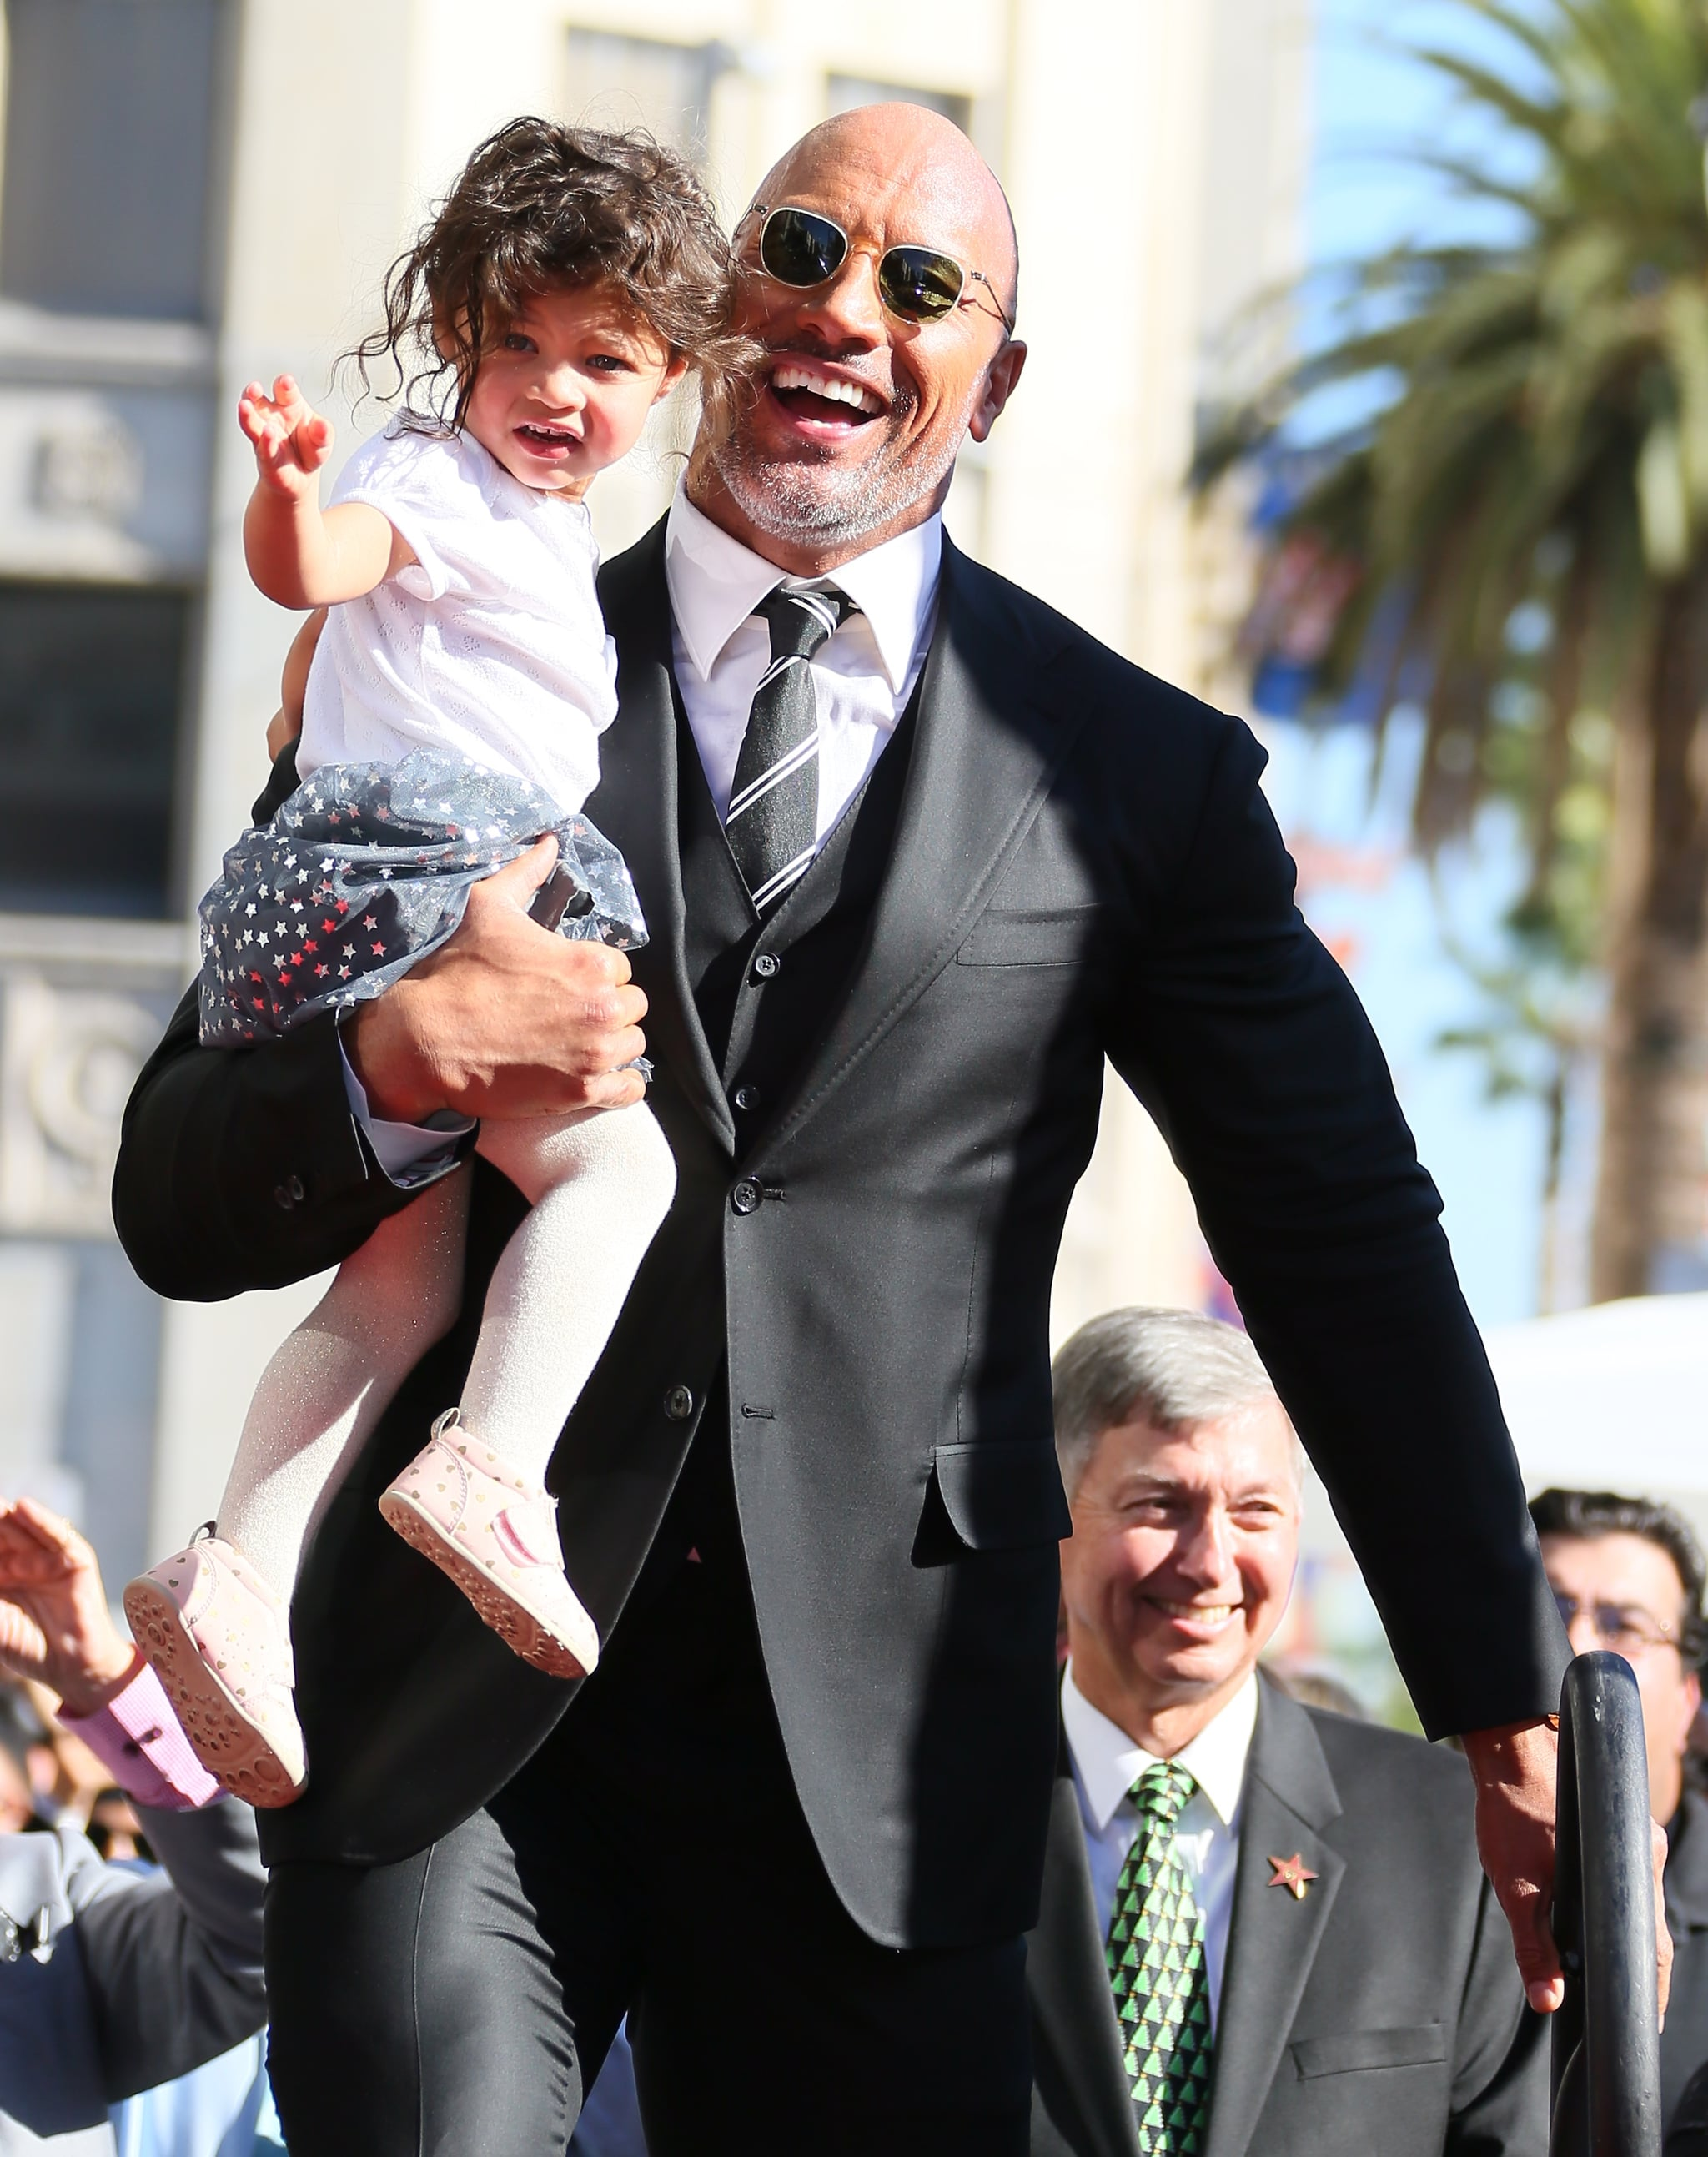 LOS ANGELES, CA - DECEMBER 13: Dwayne Johnson and daughter Jasmine Johnson attends a ceremony honouring him with a star on The Hollywood Walk of Fame on December 13, 2017 in Los Angeles, California.(Photo by JB Lacroix/ WireImage)